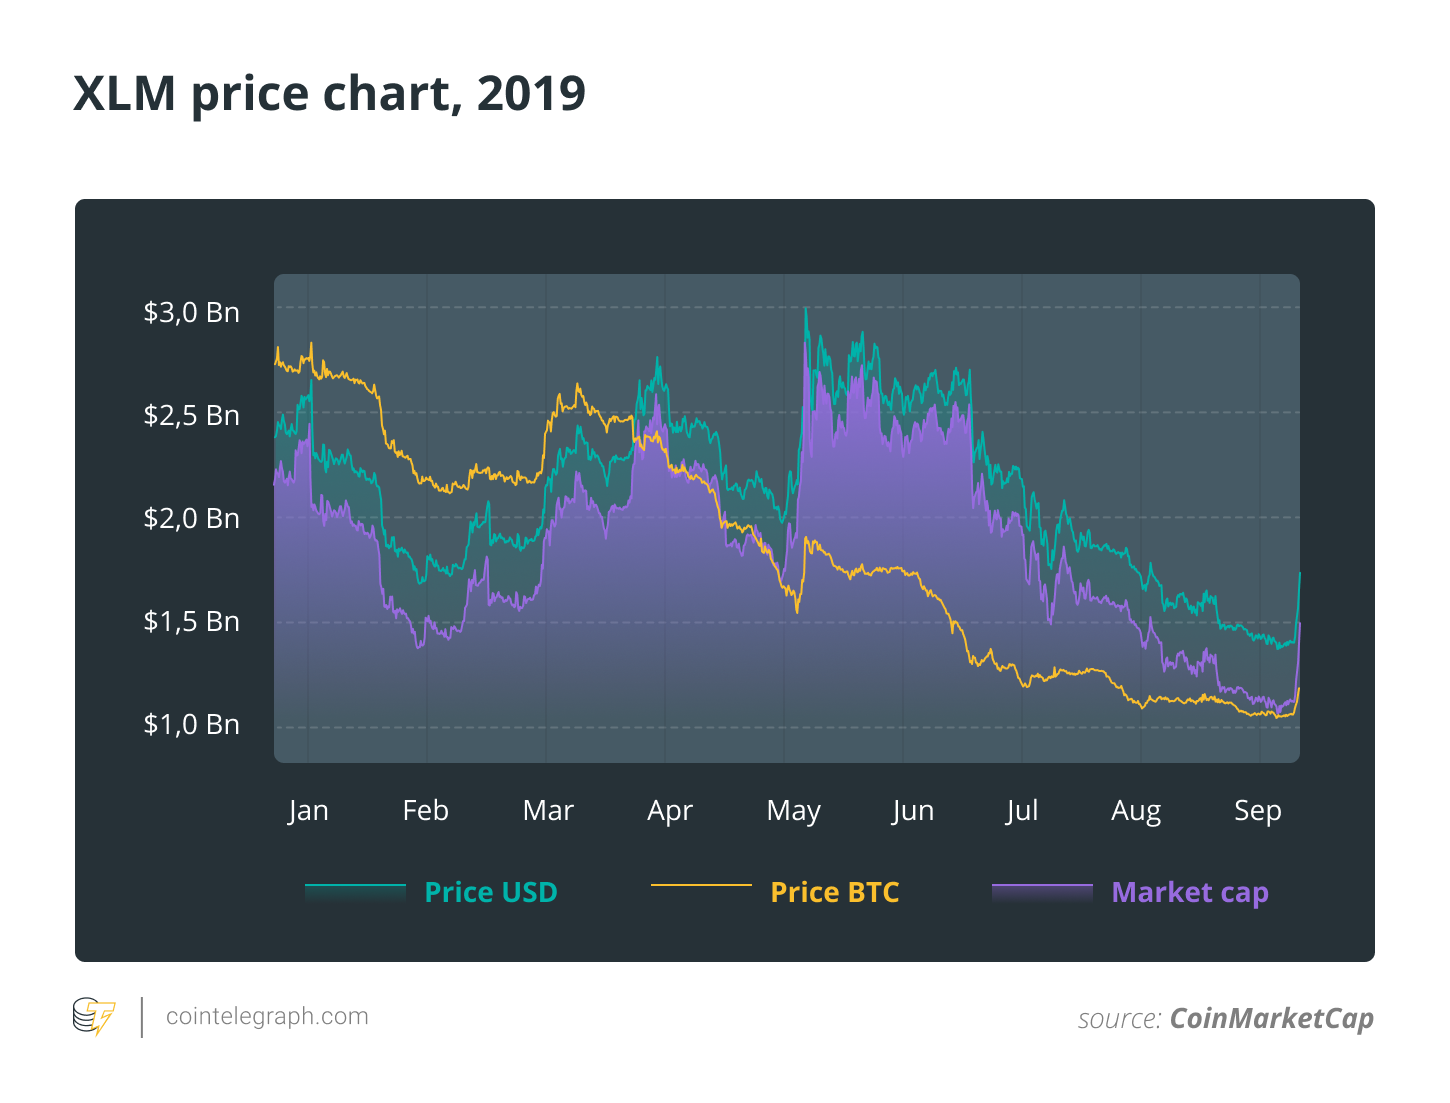 XLM price chart, 2019